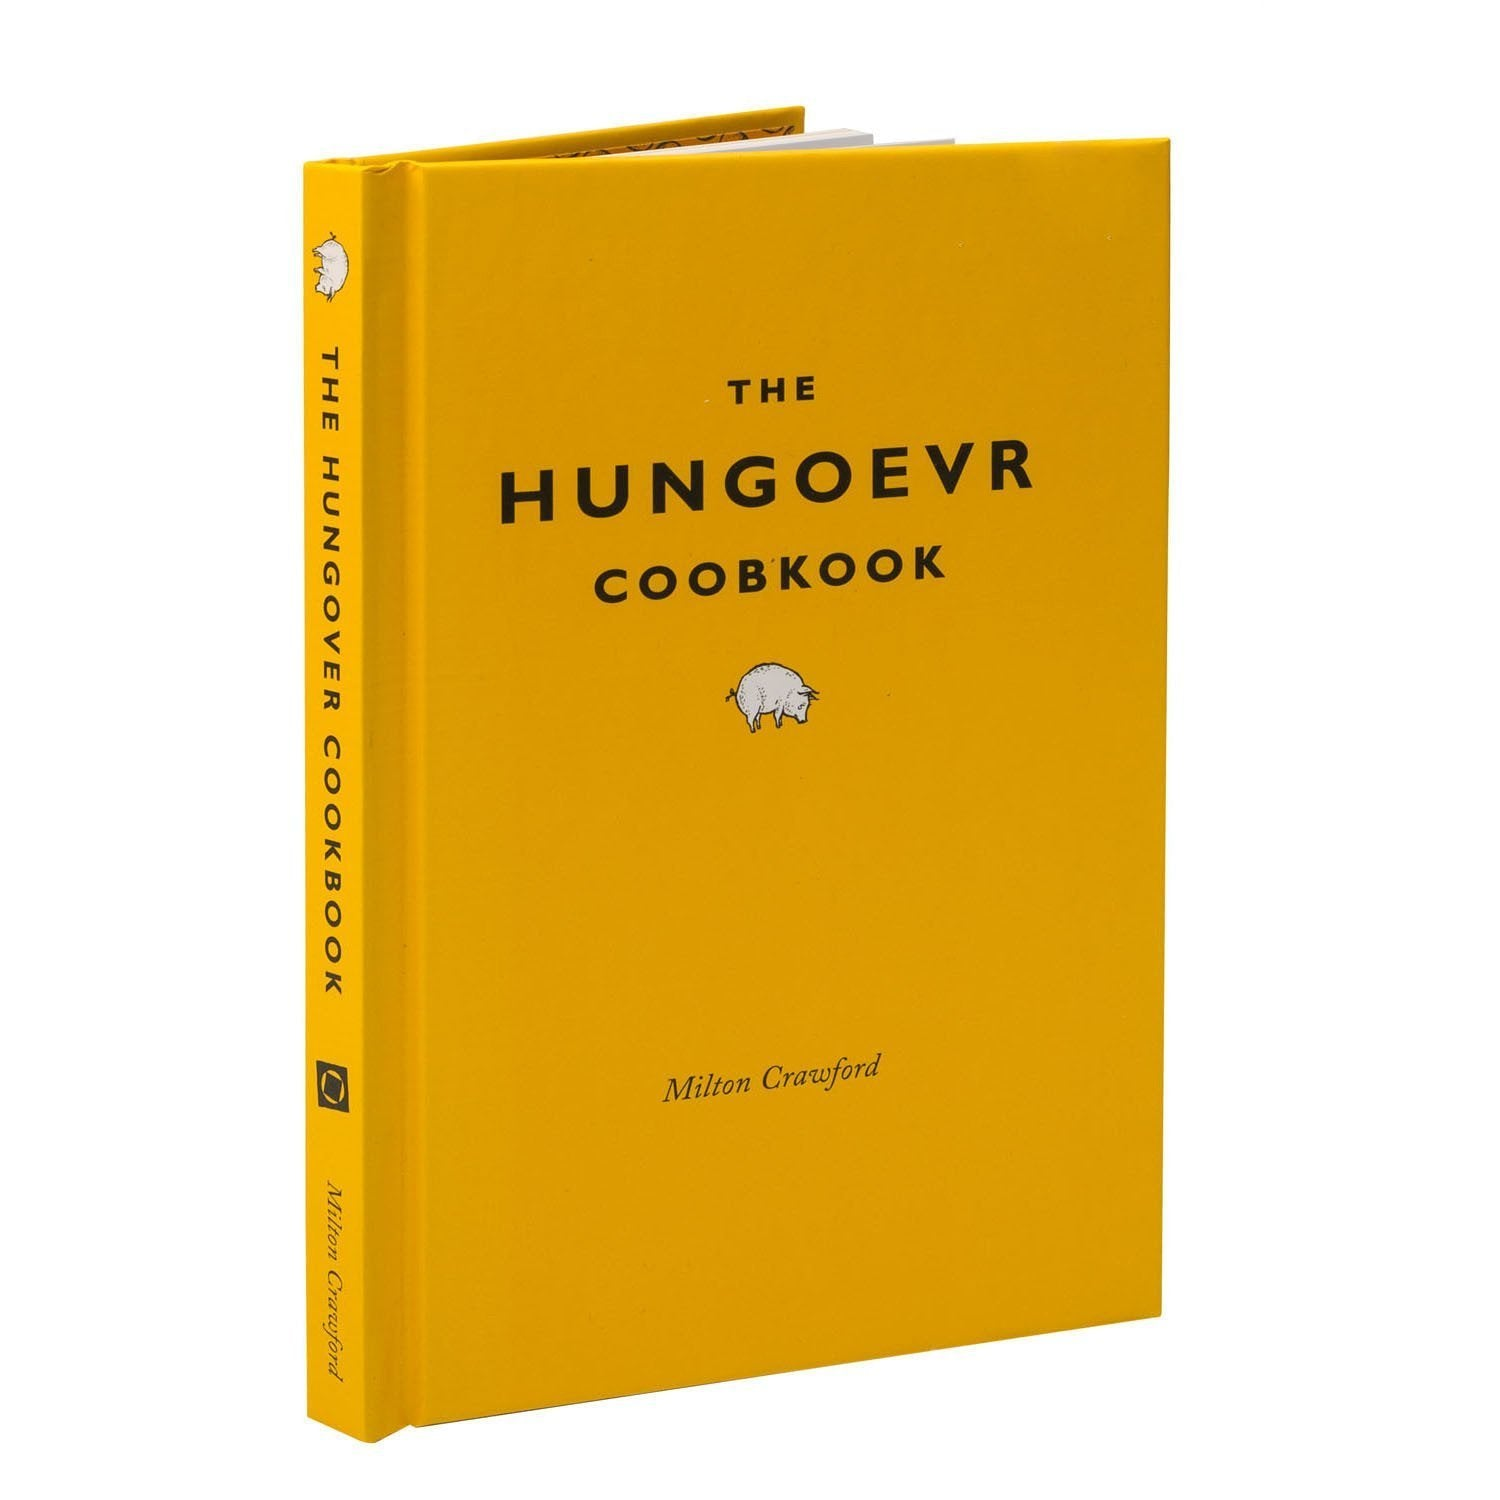 The Hungover Cook Book